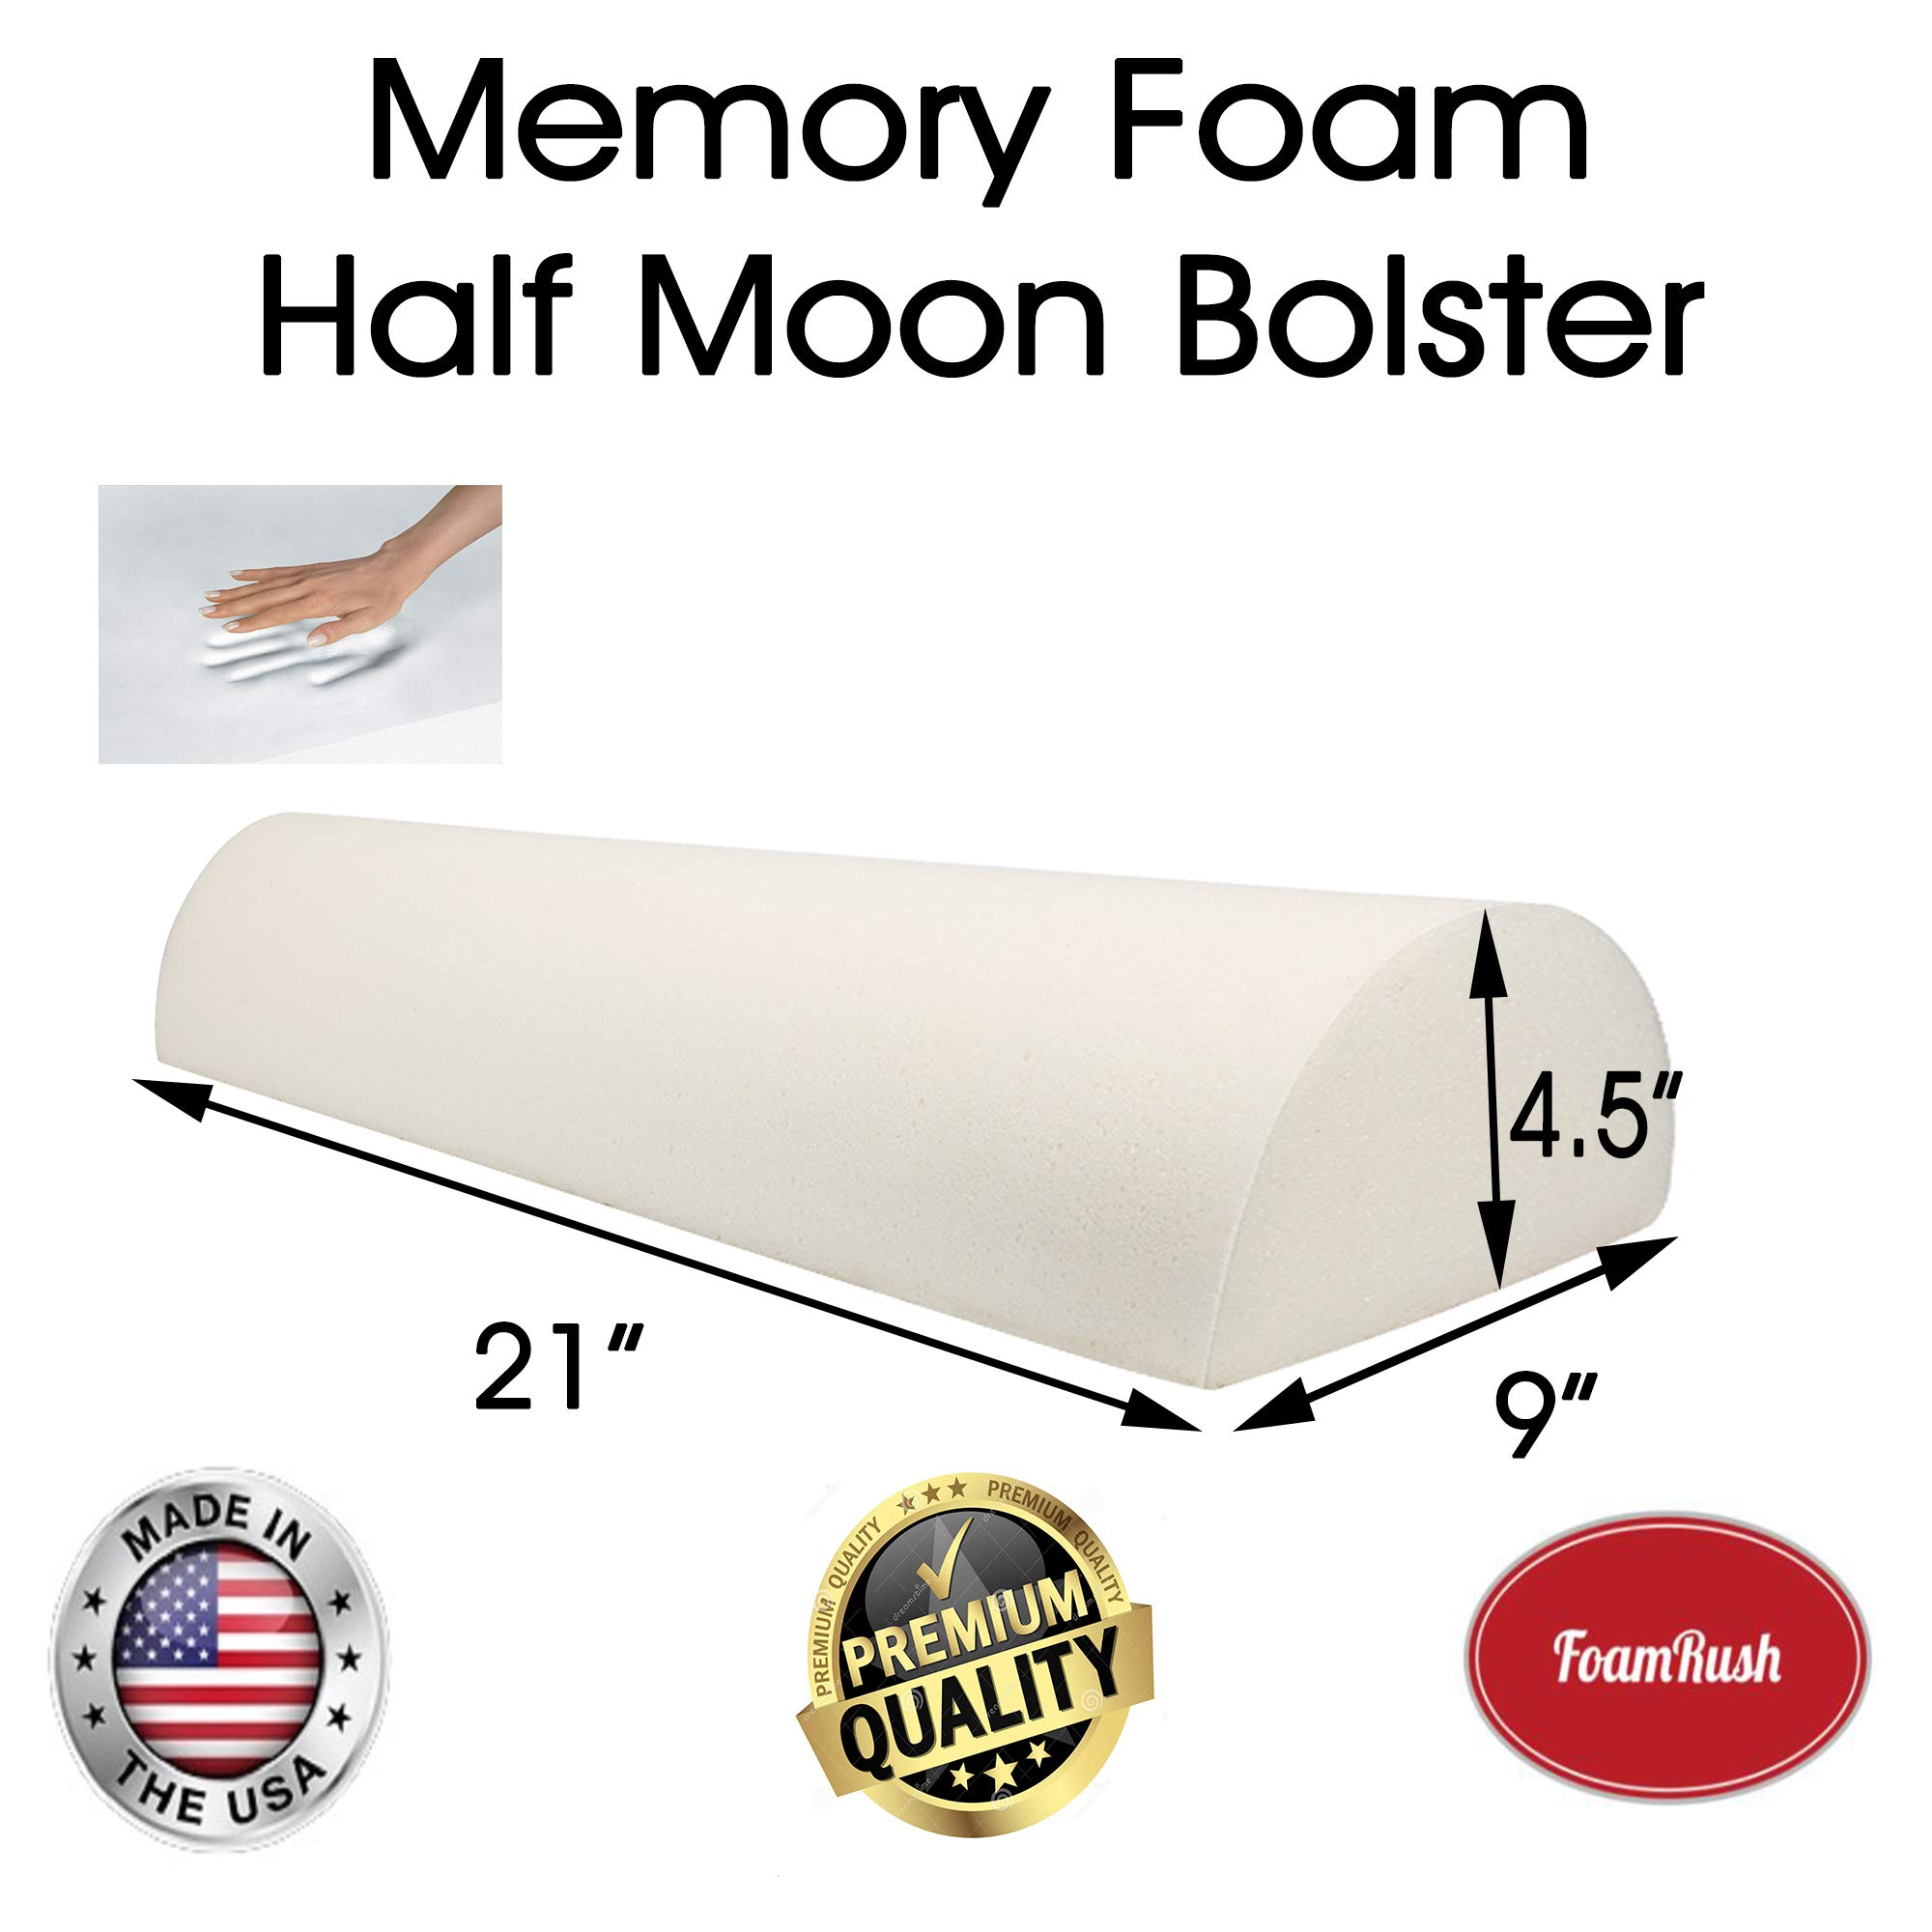 FoamRush 4.5'' H x 9'' D x21'' L Premium Quality Memory Foam Half Moon, Semi-Roll Bolster Cushion Replacement (Pressure Relief for Side, Back, Stomach Sleepers to Reduce Joint Stress) Made in USA by FoamRush